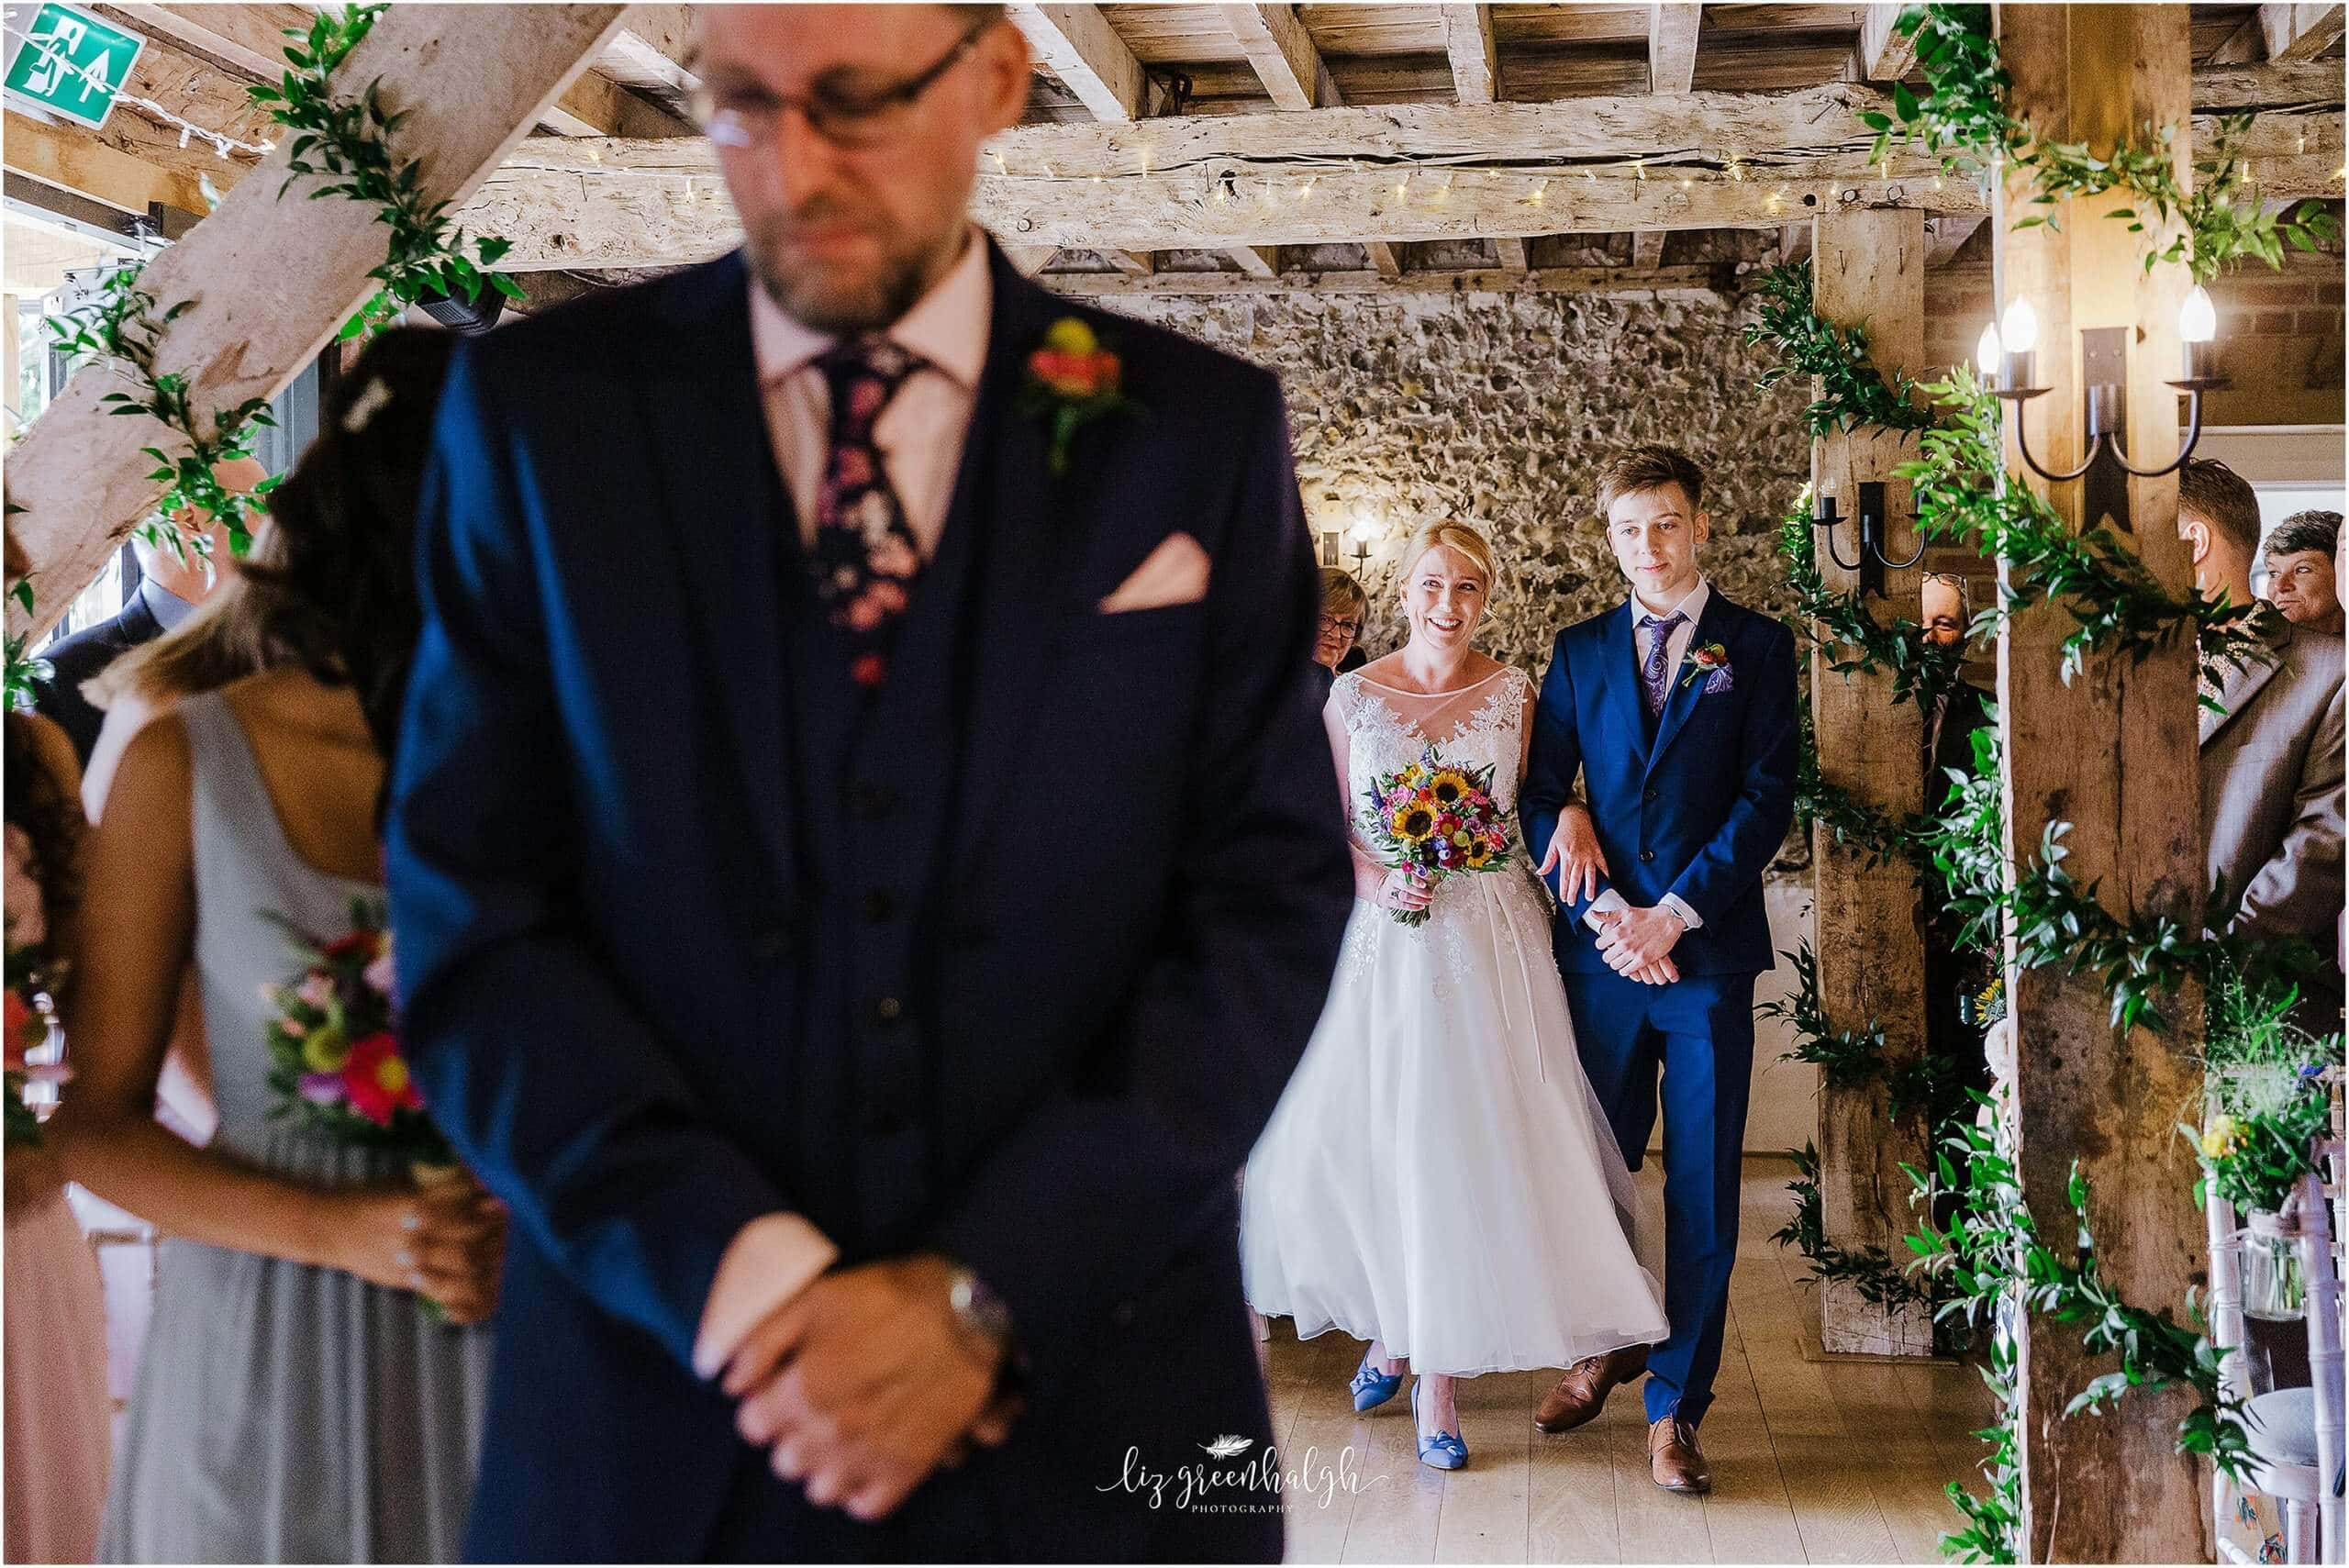 Wedding Photography at Granary Estates